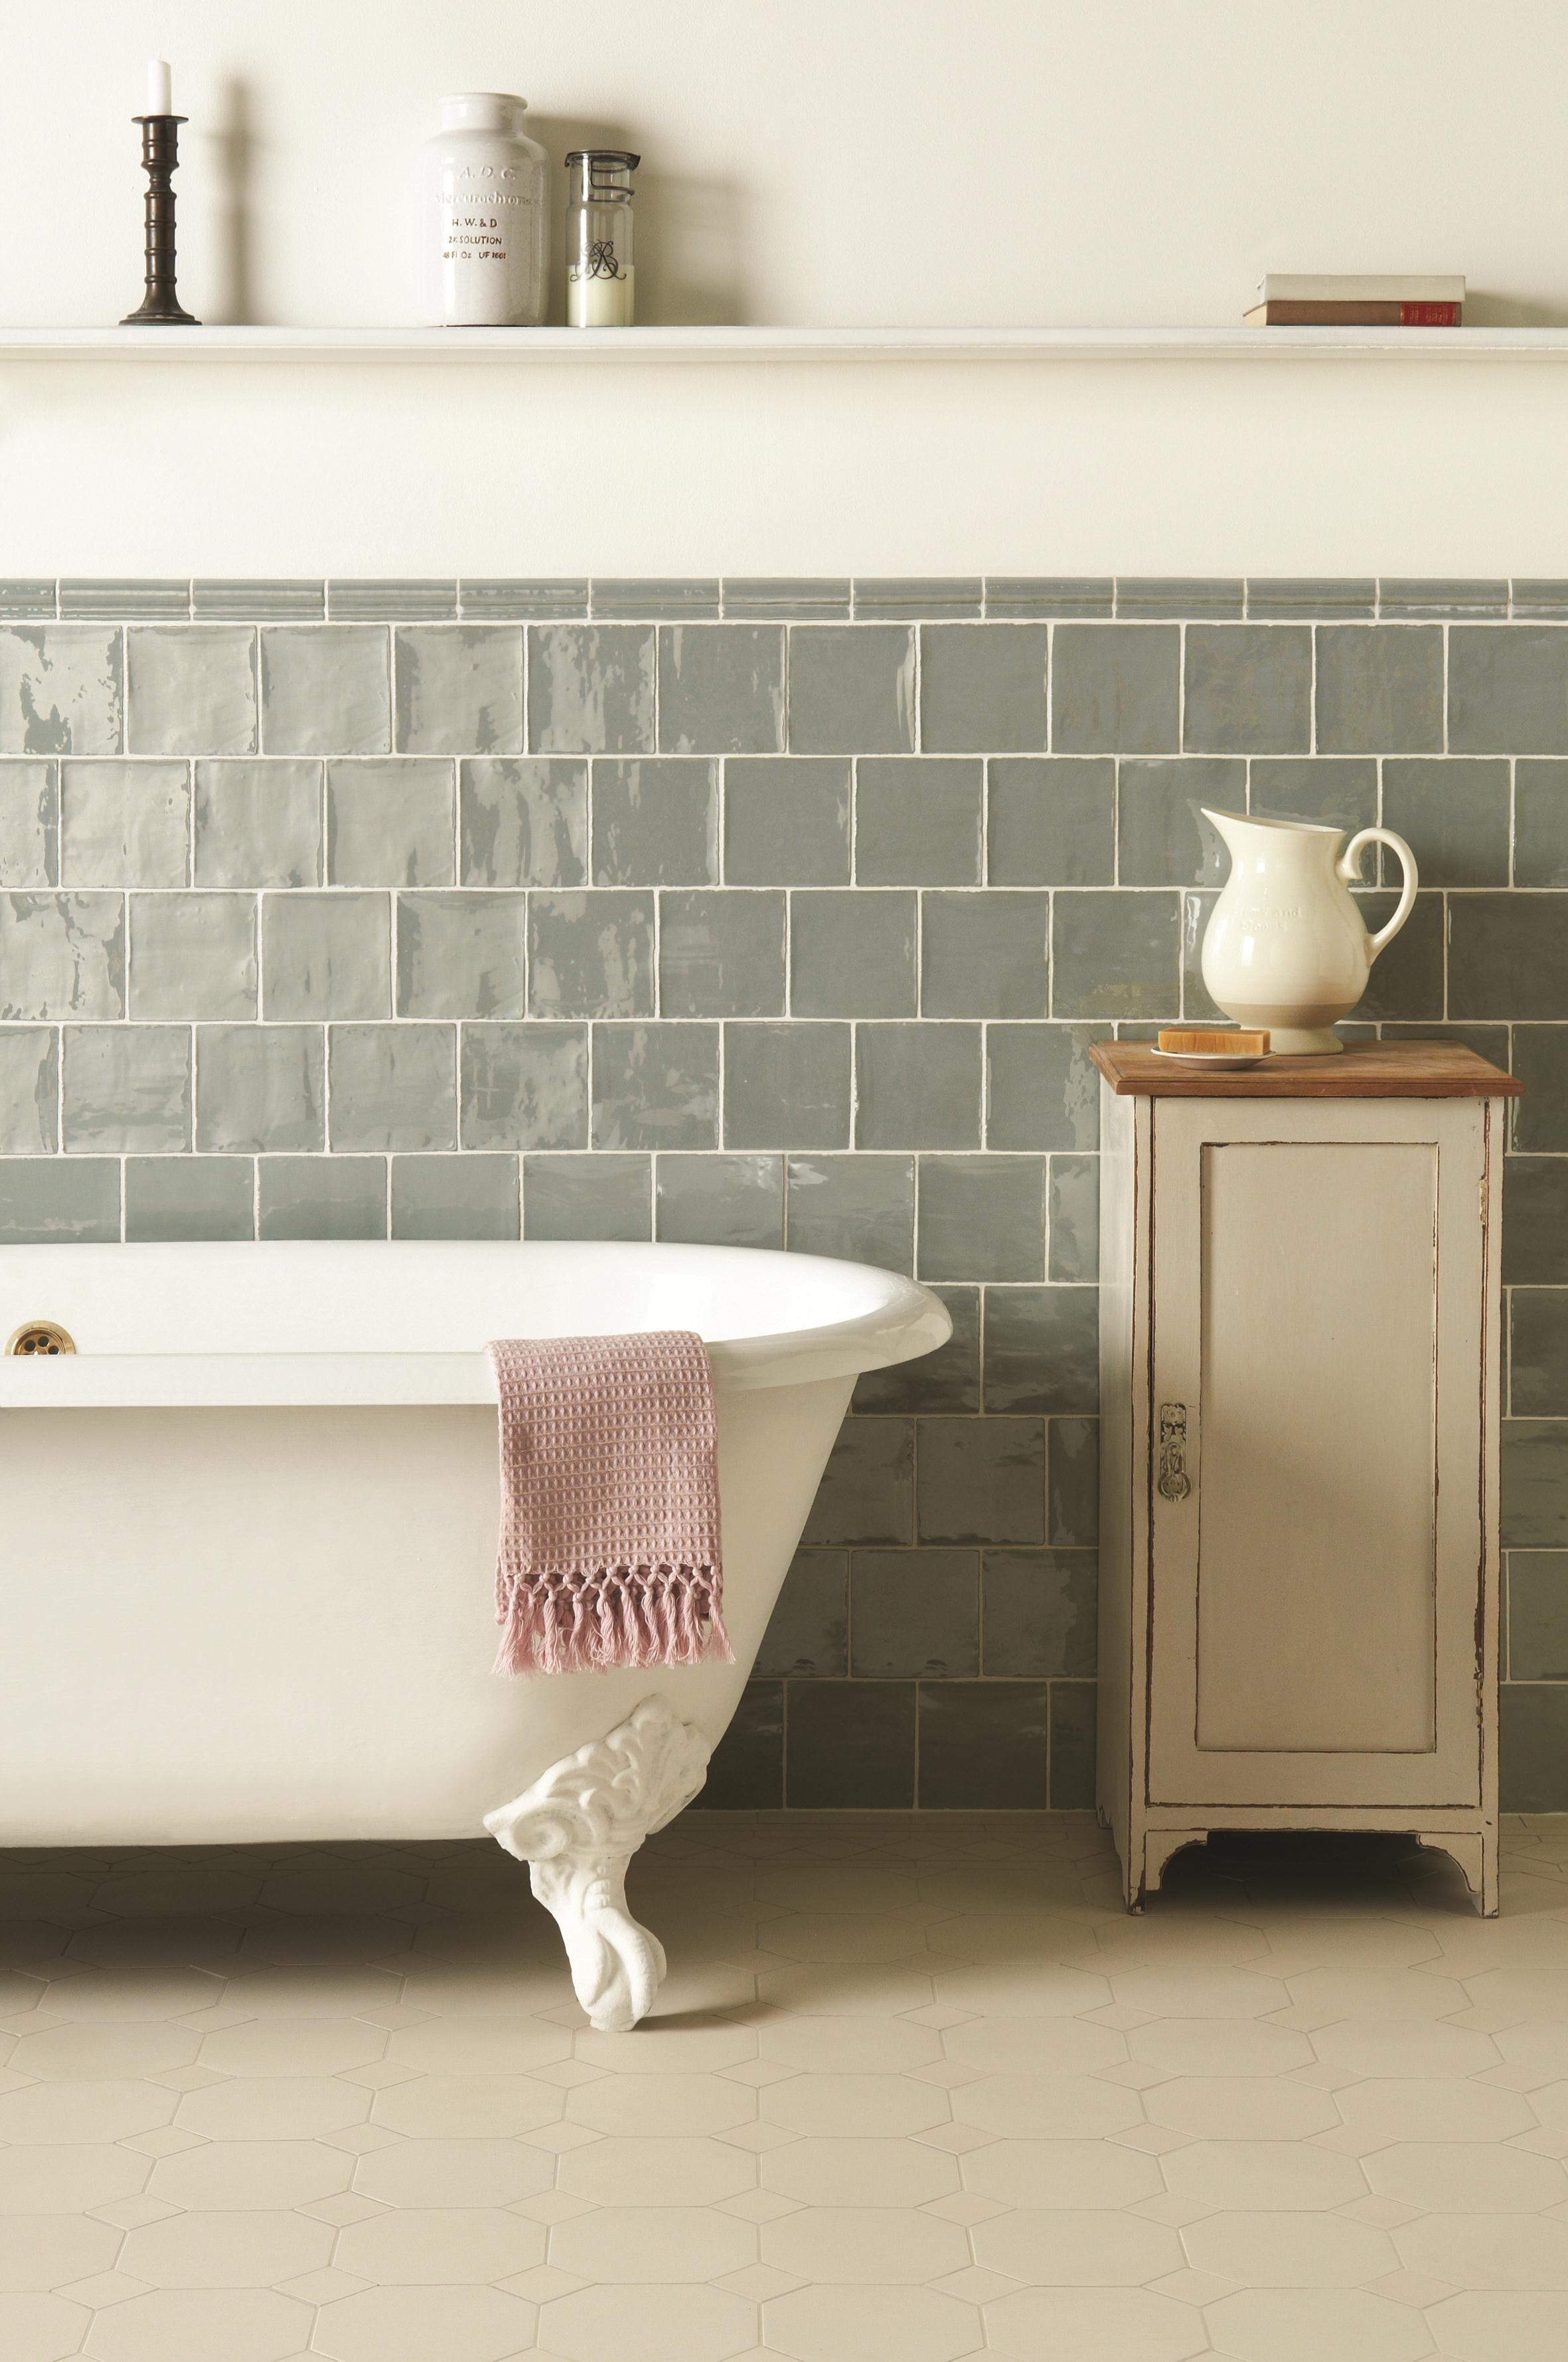 Original Style - VFT - Dover White York pattern with Winchester Metropolitan Lazul wall tiles _2.jpg